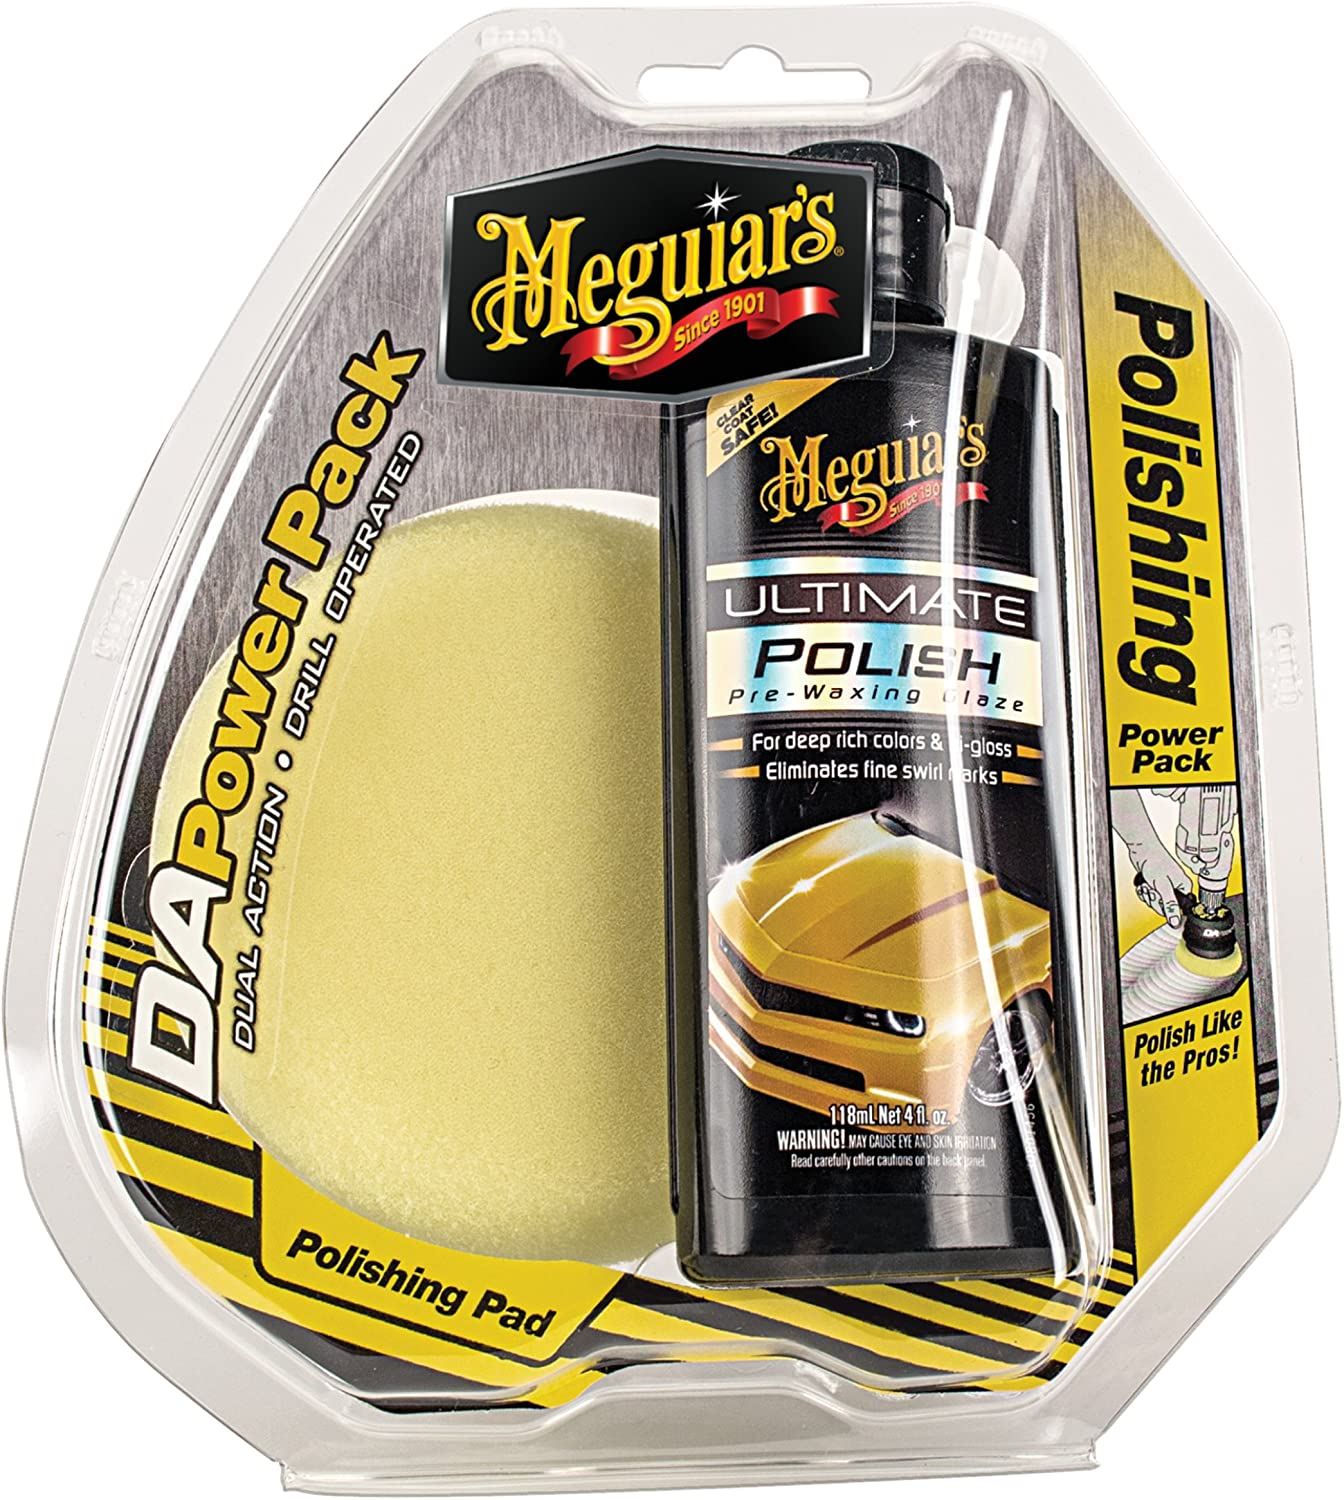 Meguiars G3501 DA Compound Power Pack